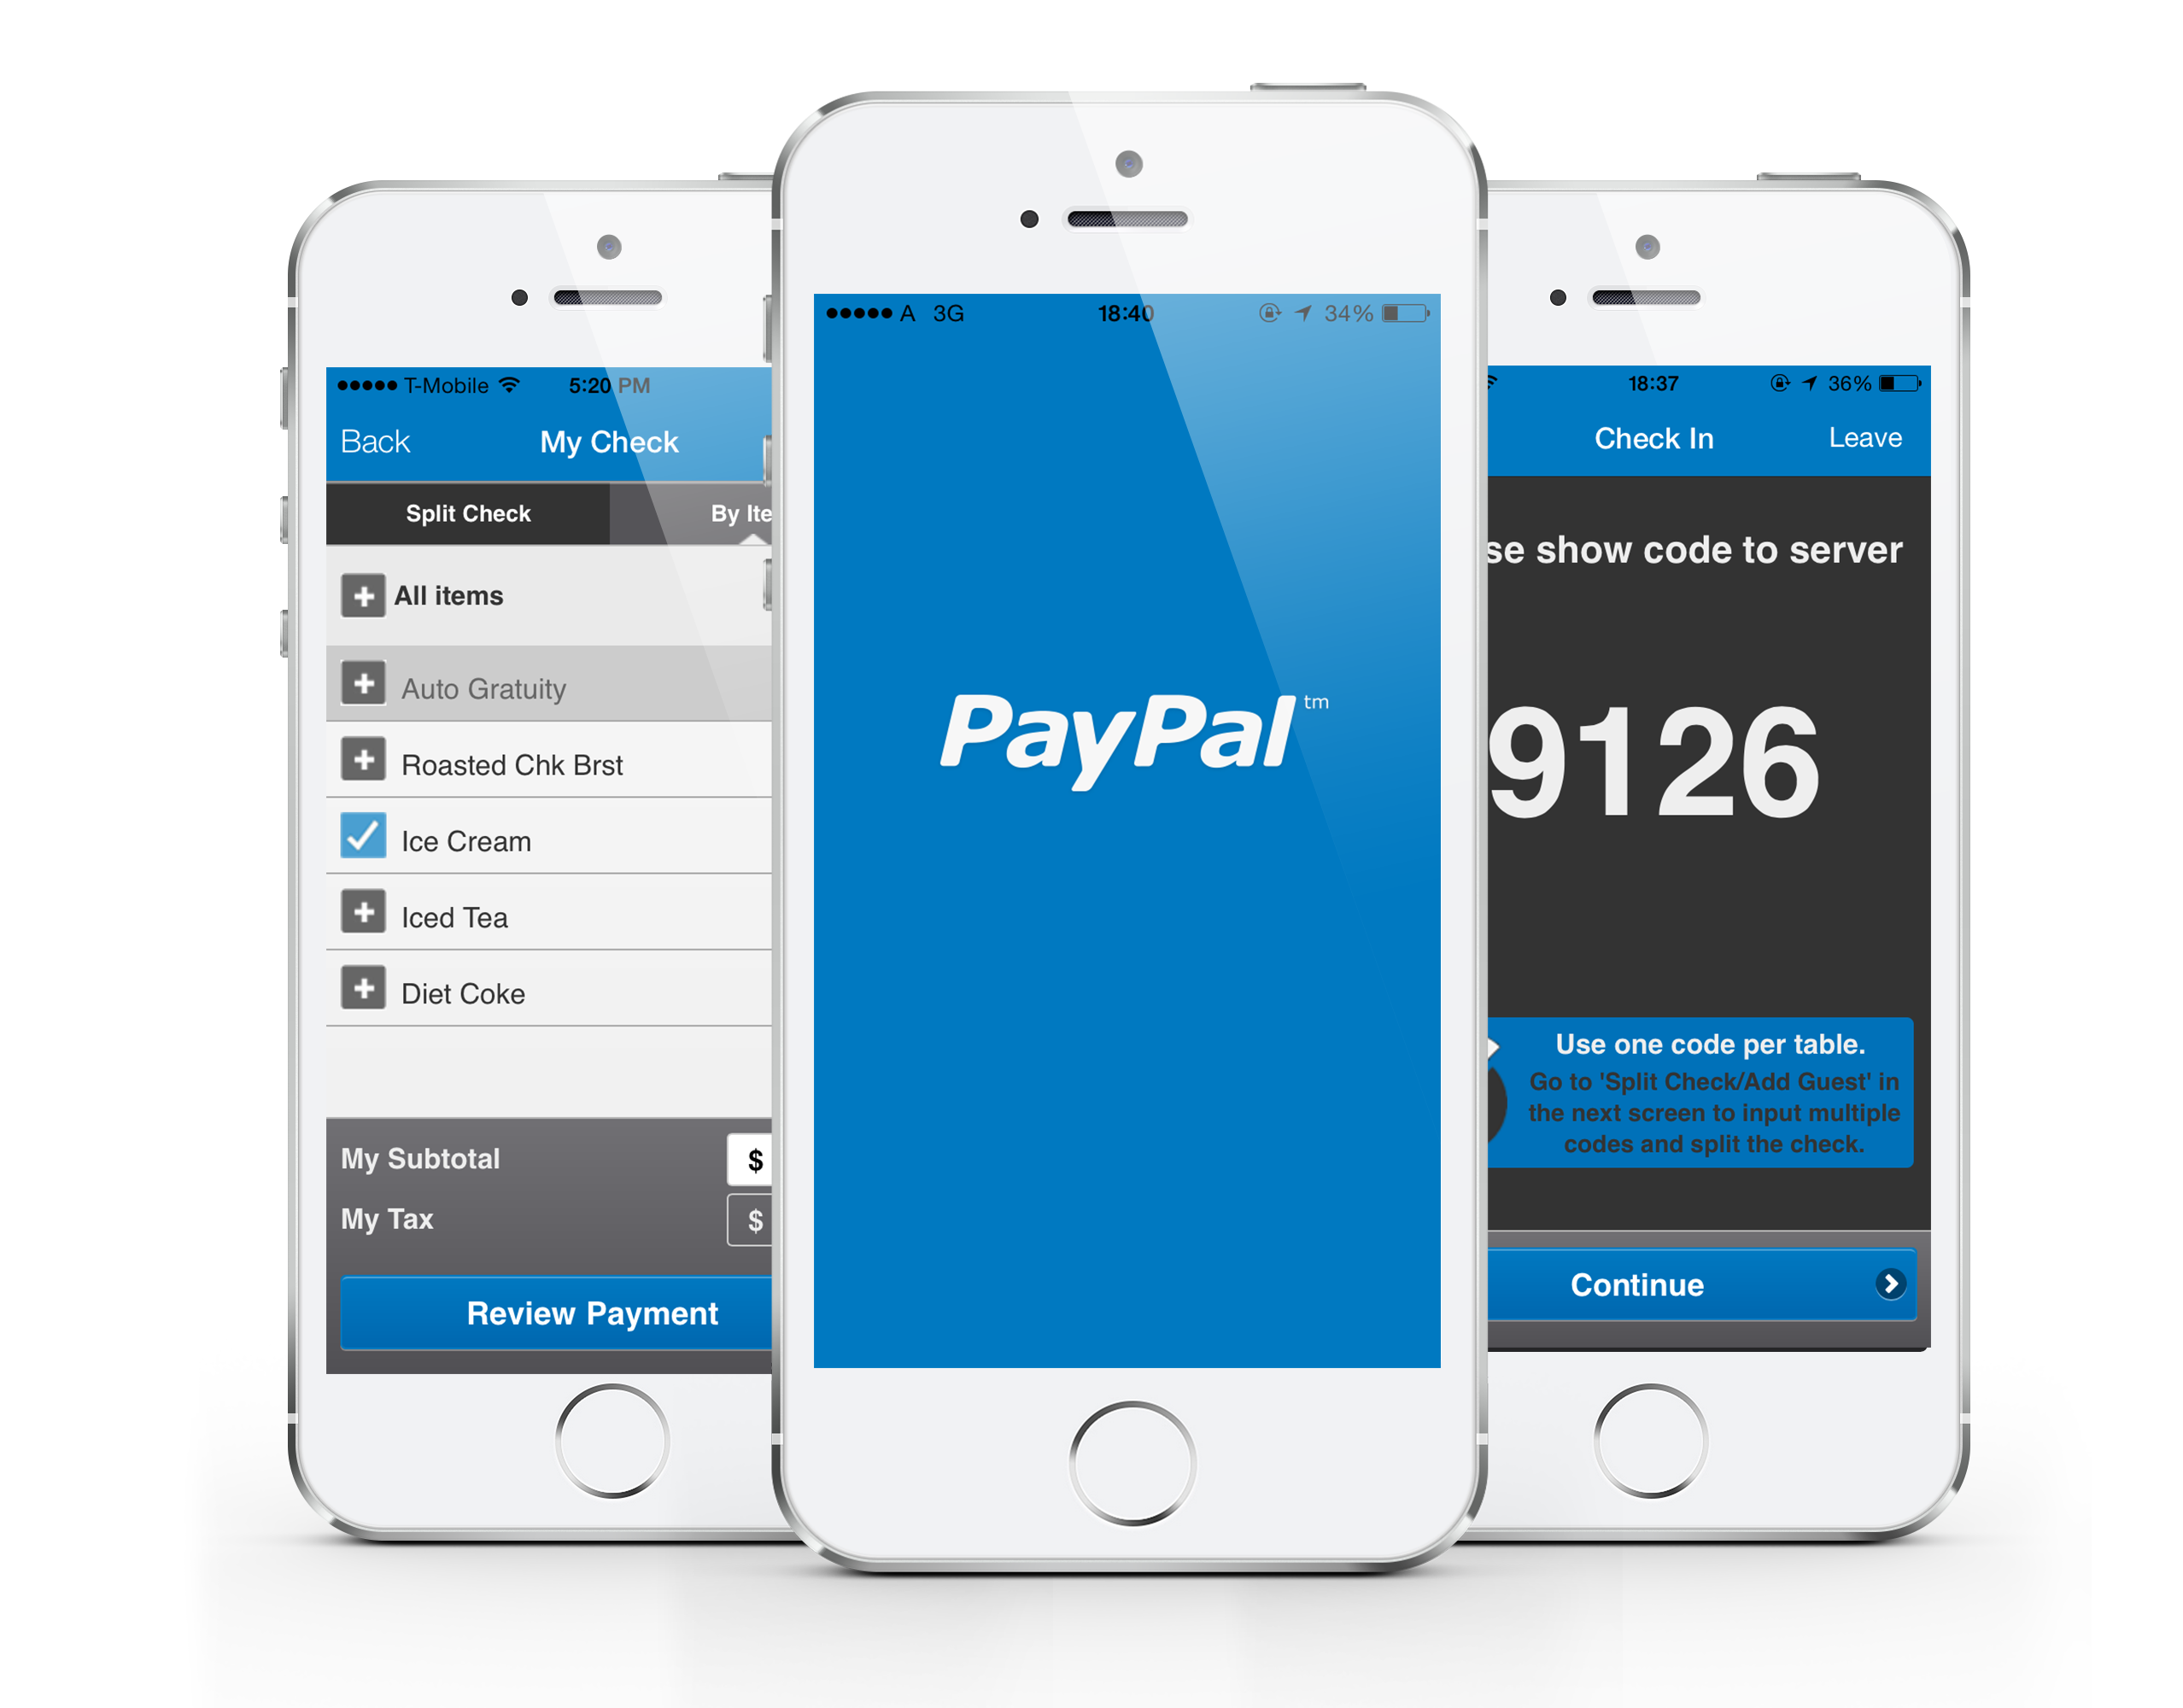 PayPal App For Android Keep Connect your Bank